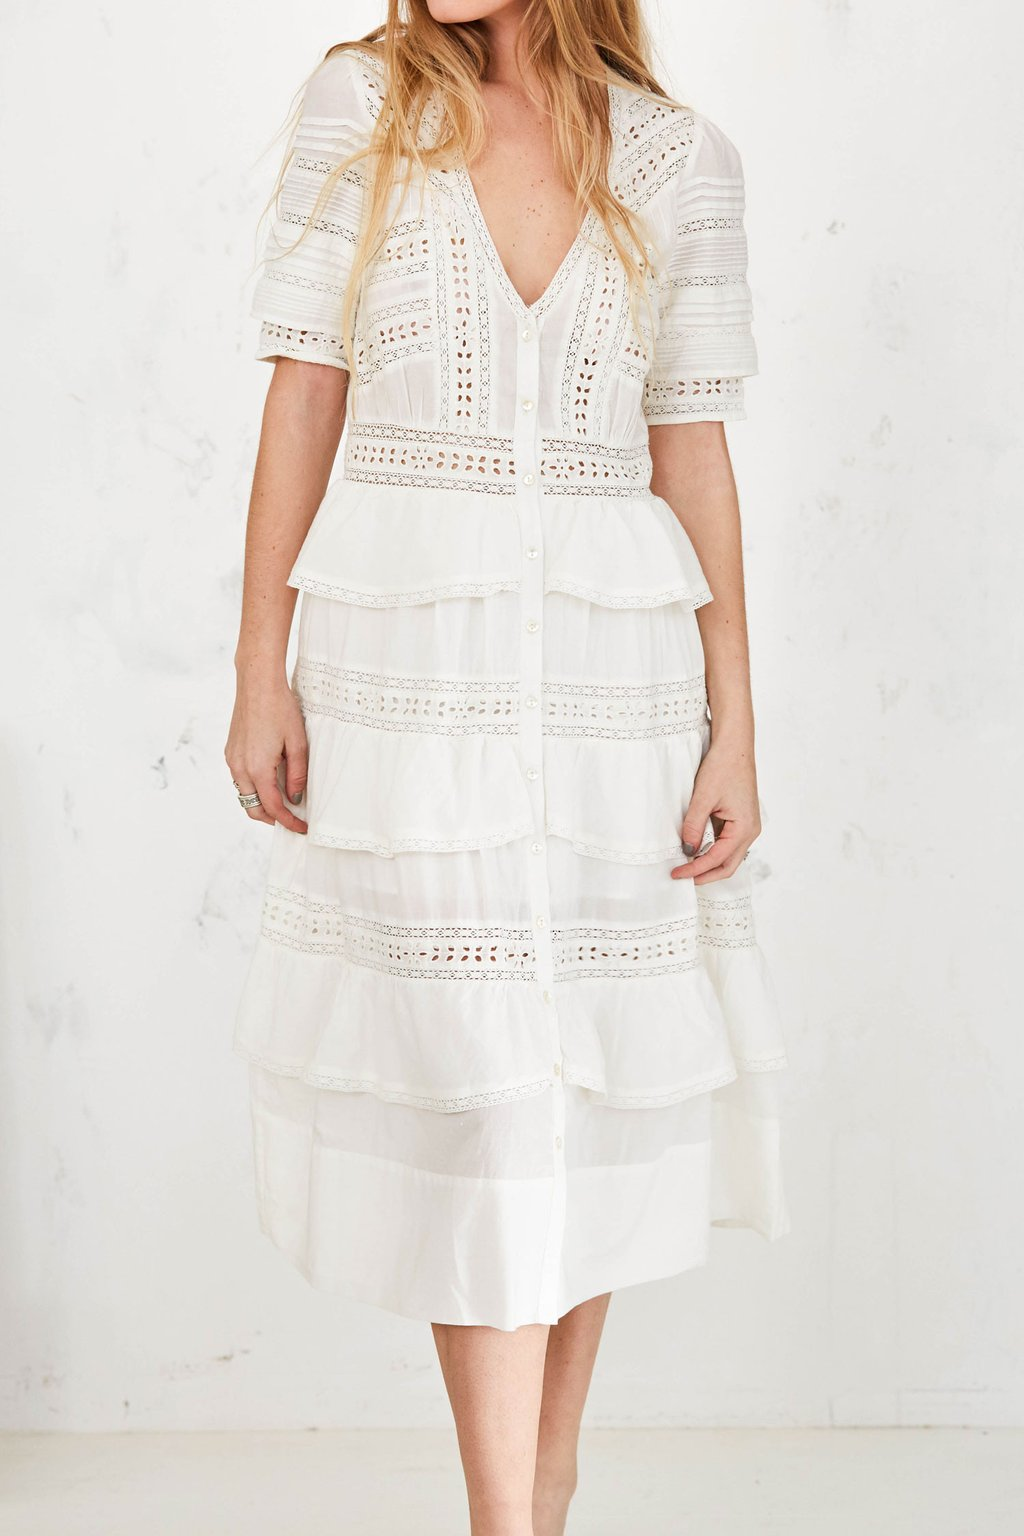 Loveshackfancy-Rebecca-Dress-White-1_1024x.jpg